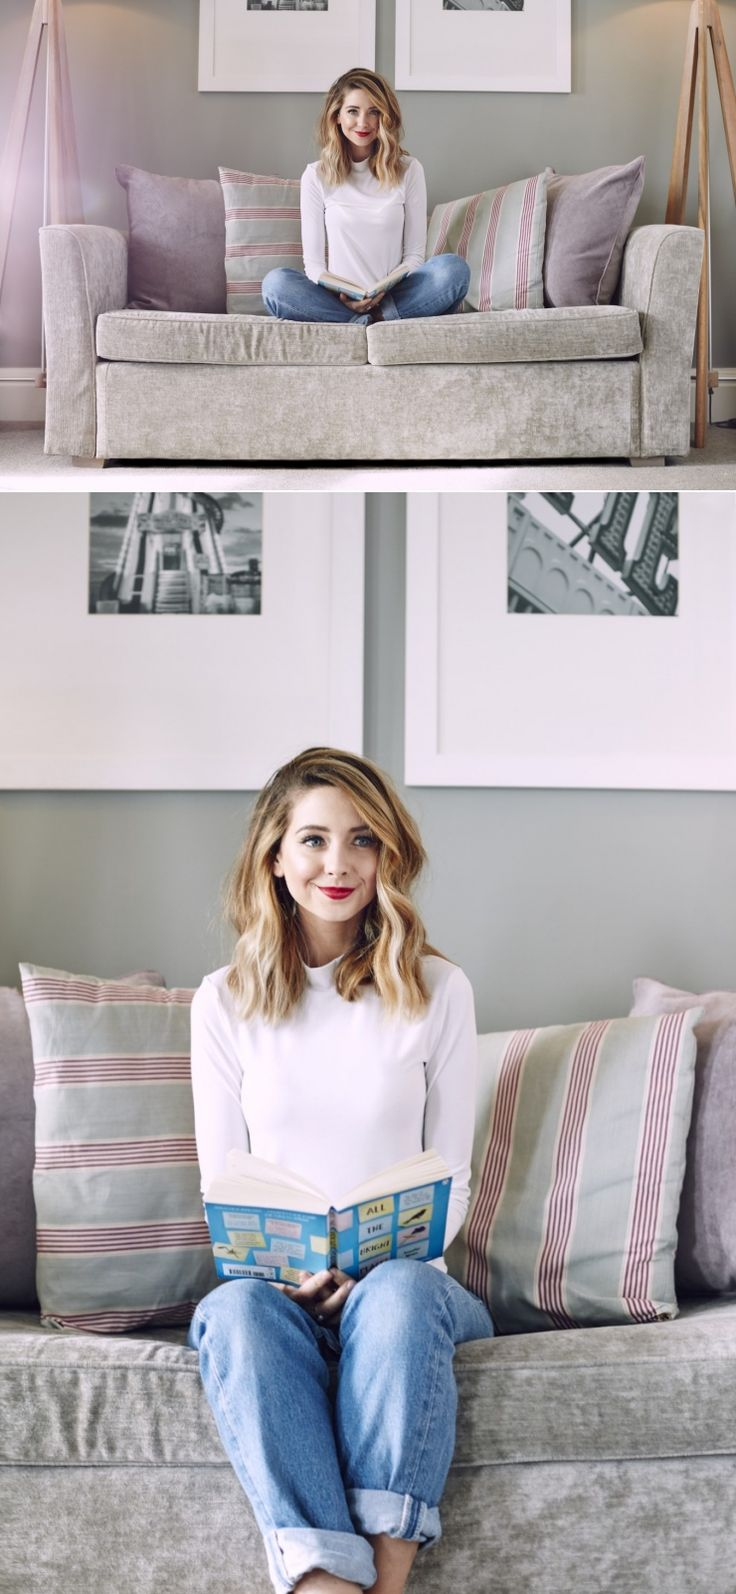 Lifestyle Blogger Photo Inspo | Zoella | The WHSmith & Zoella Book Club